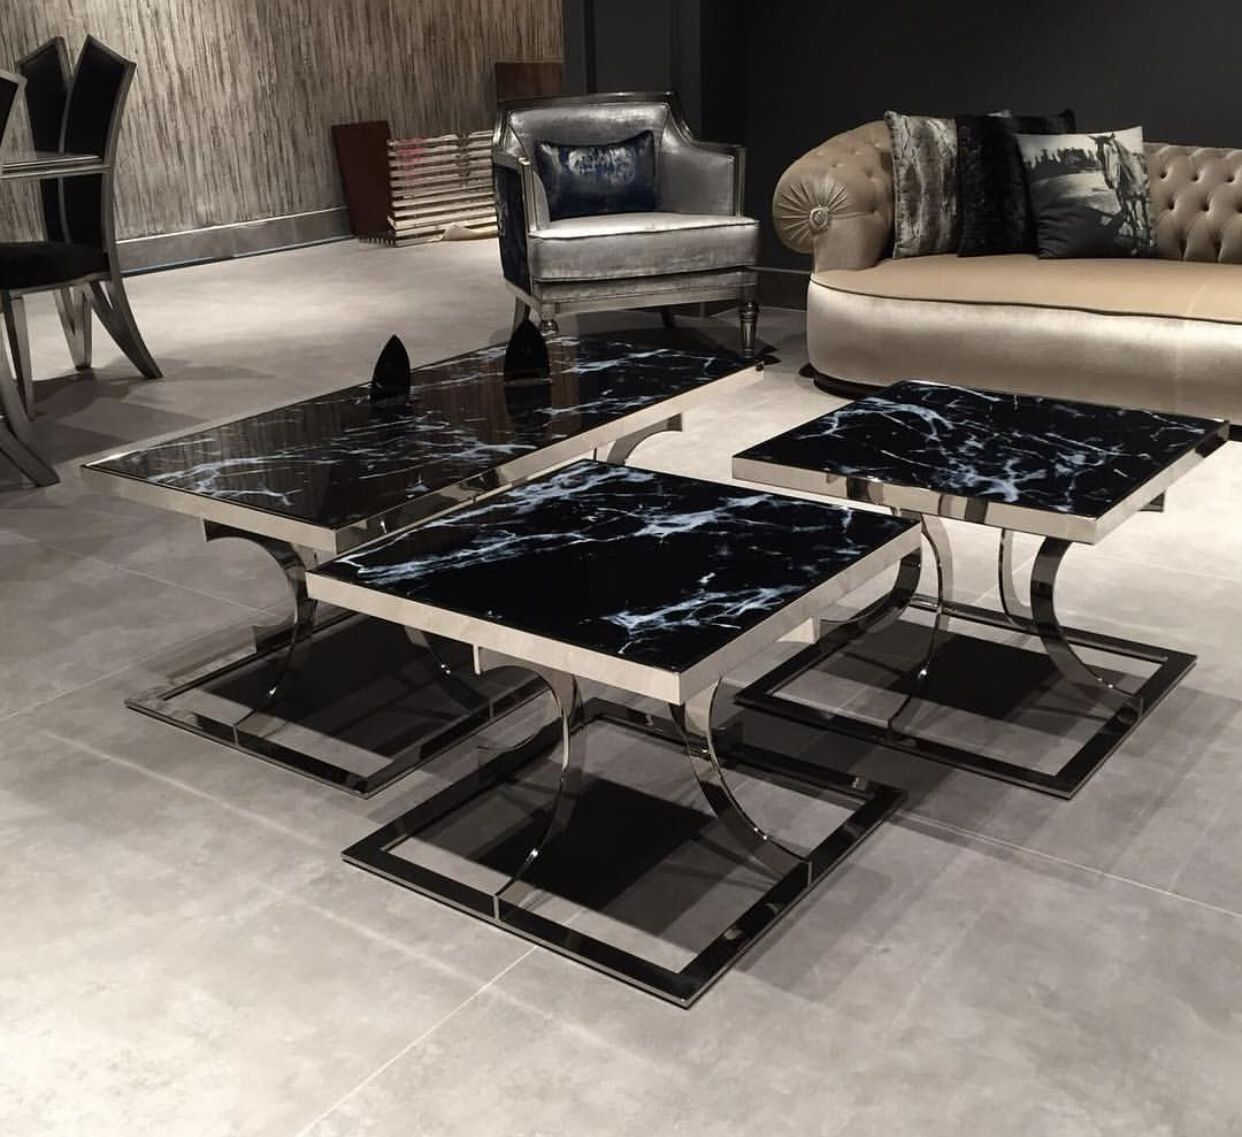 Pin By Iwona On Furniture Coffee Table Design Home Accessories Coffee Table